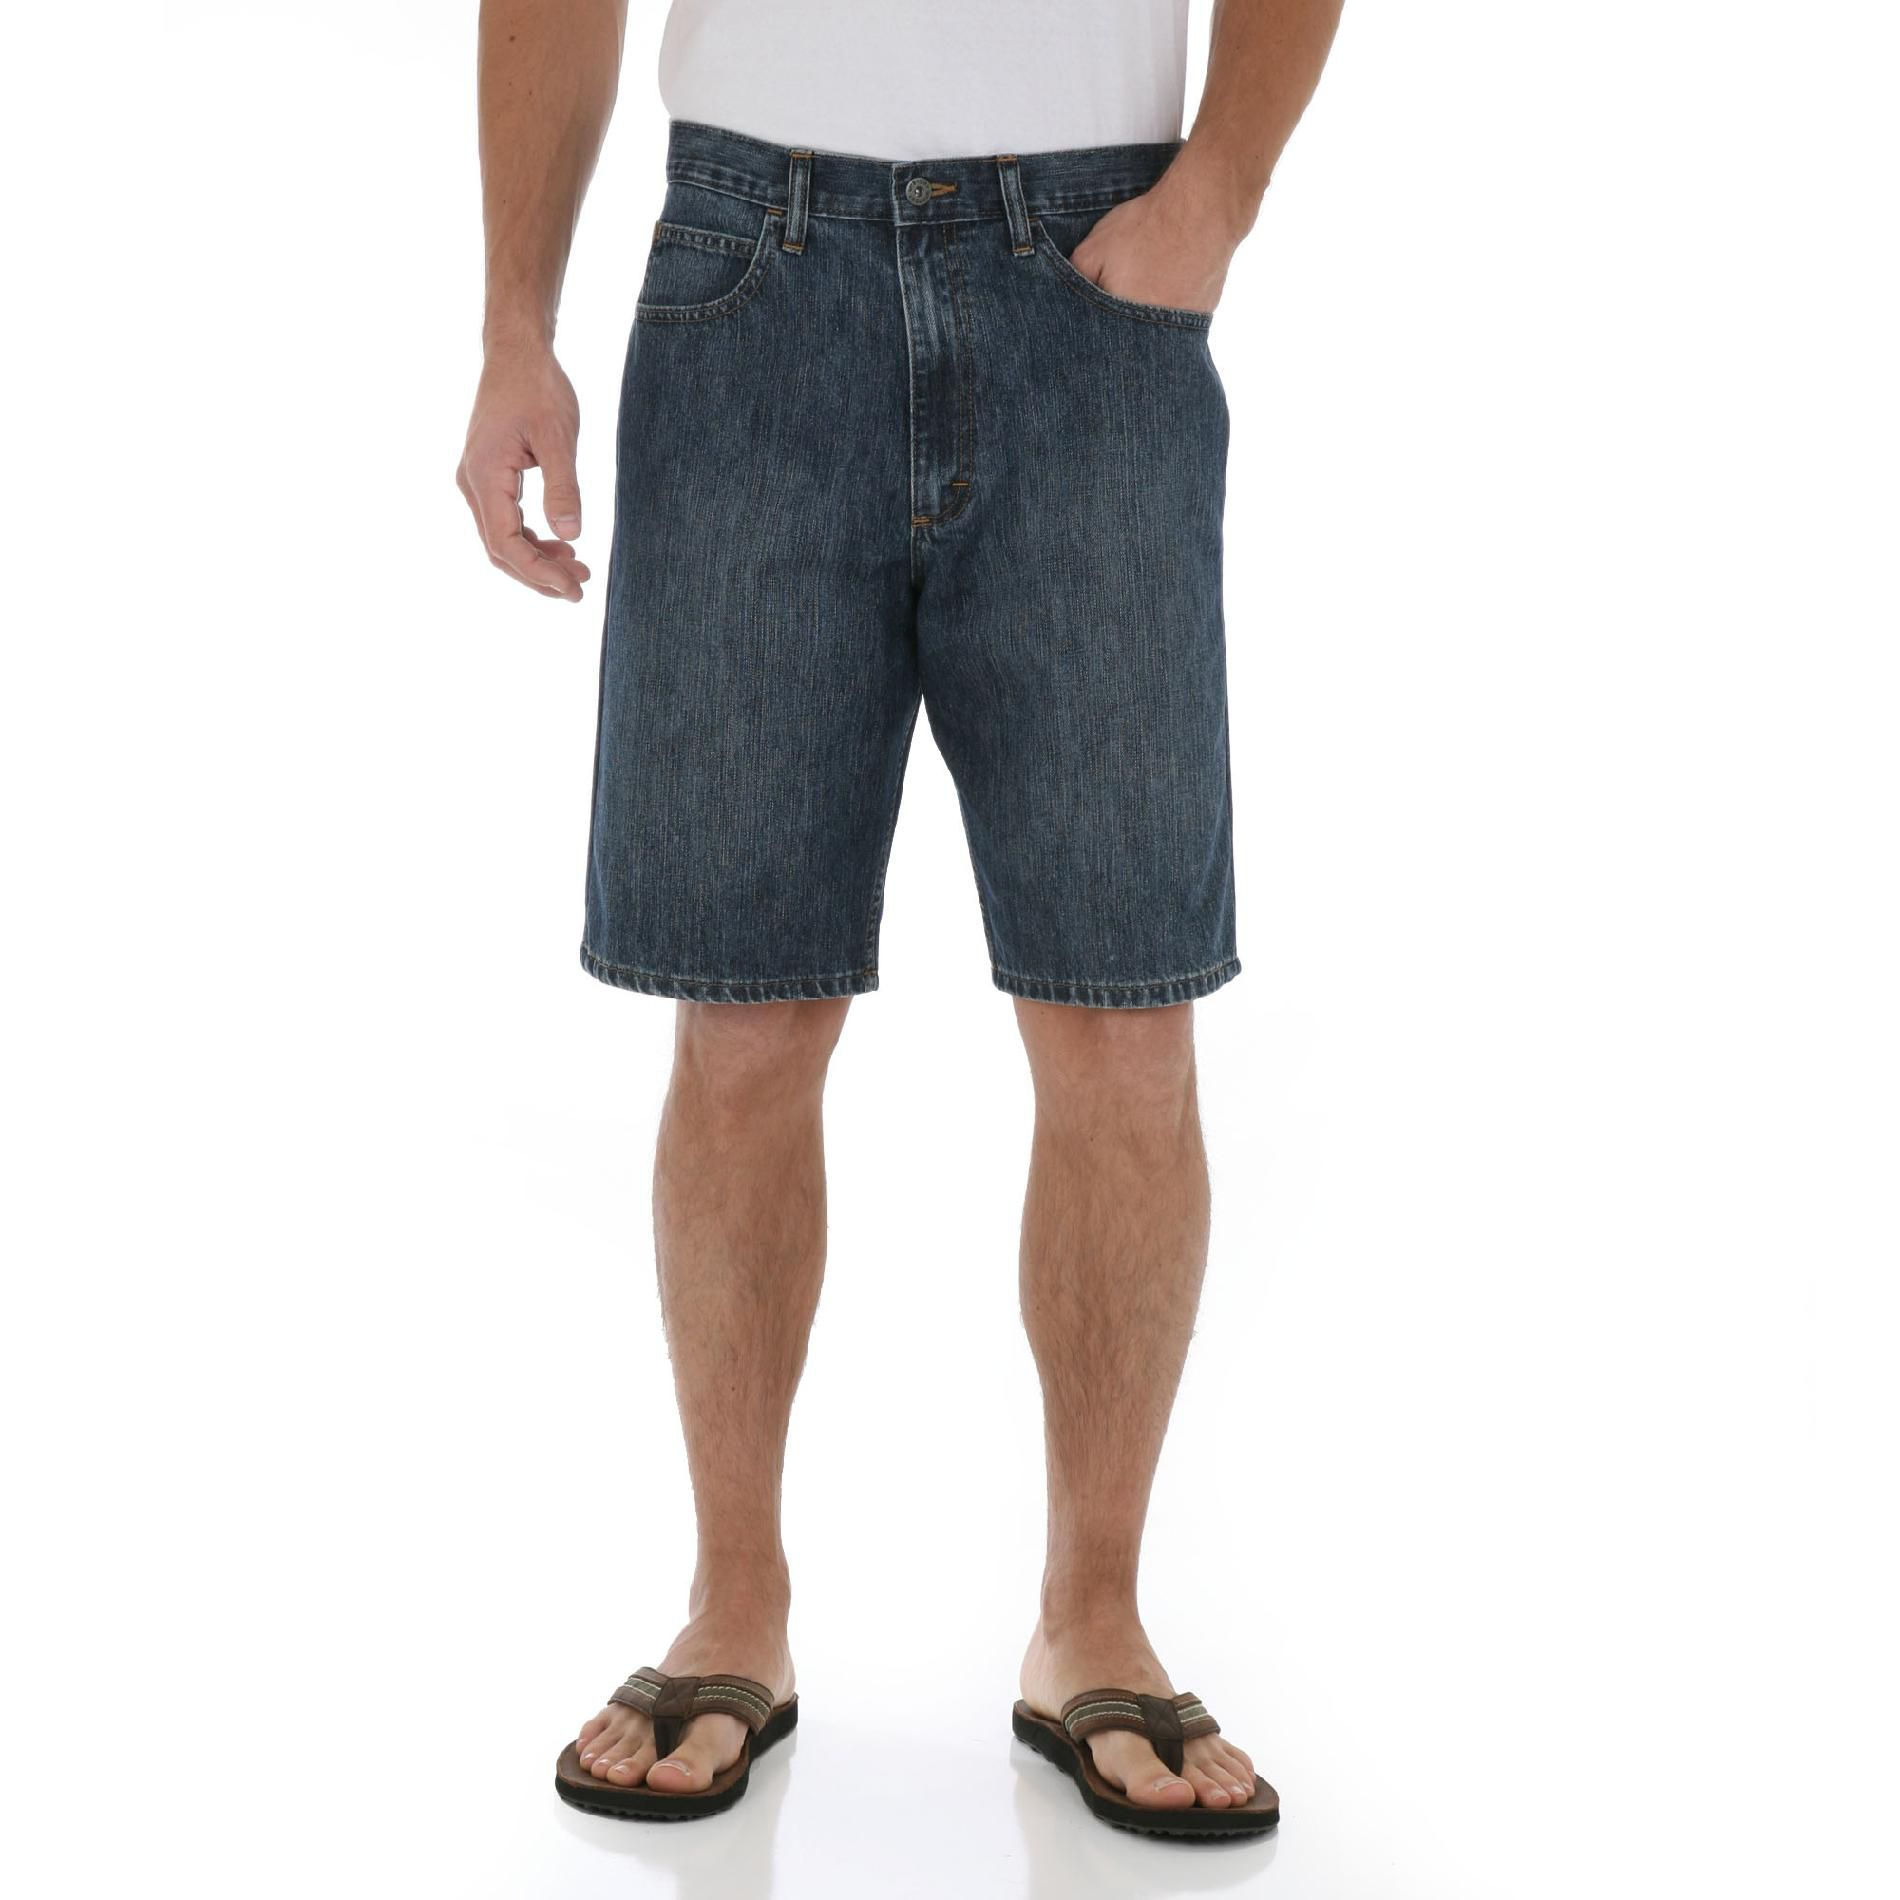 Wrangler Men's Loose Fit Denim Shorts at Kmart.com